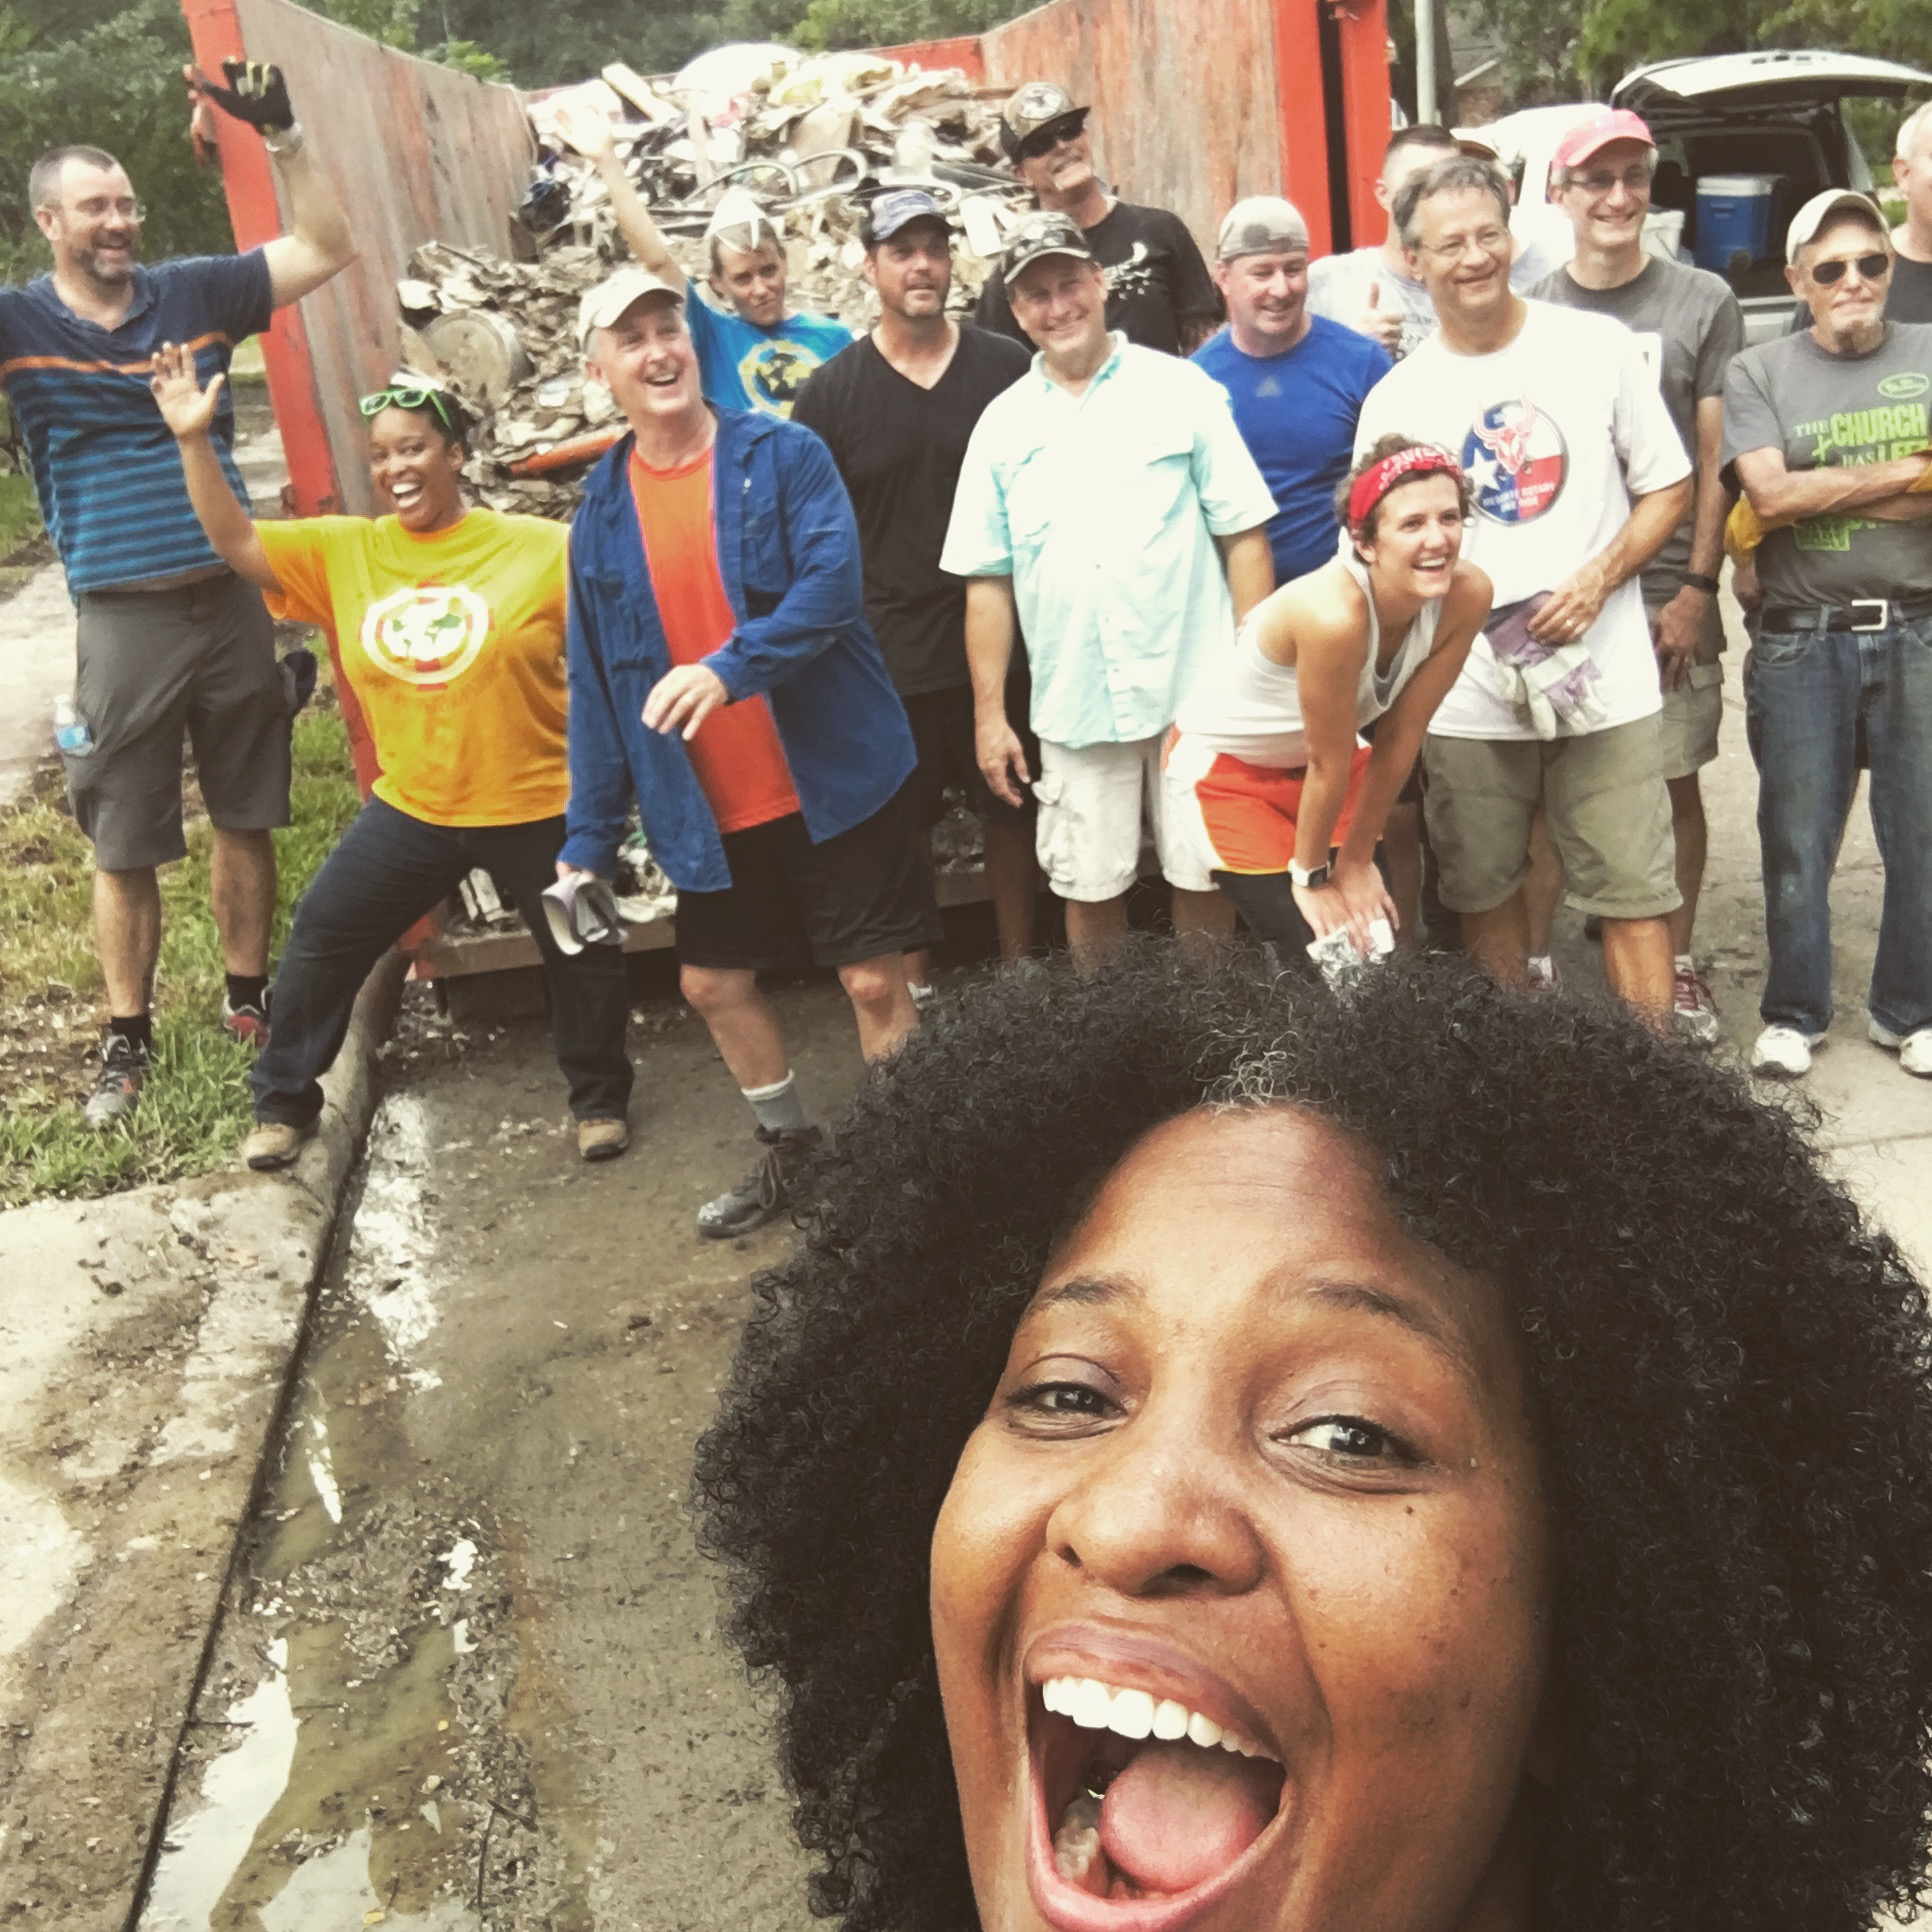 This past weekend,   three volunteer crews from all over Texas miraculously showed up at our house  , taking all that waste you see in the photo at the top of this page, and heaving it into the giant dumpster you see behind us in this photo.  They also helped move all of our salvaged goods into a storage pod.  What would've taken us weeks was accomplished in a matter of hours, because of these fine folks.  Just another one of those mini-miracles that keep popping up.